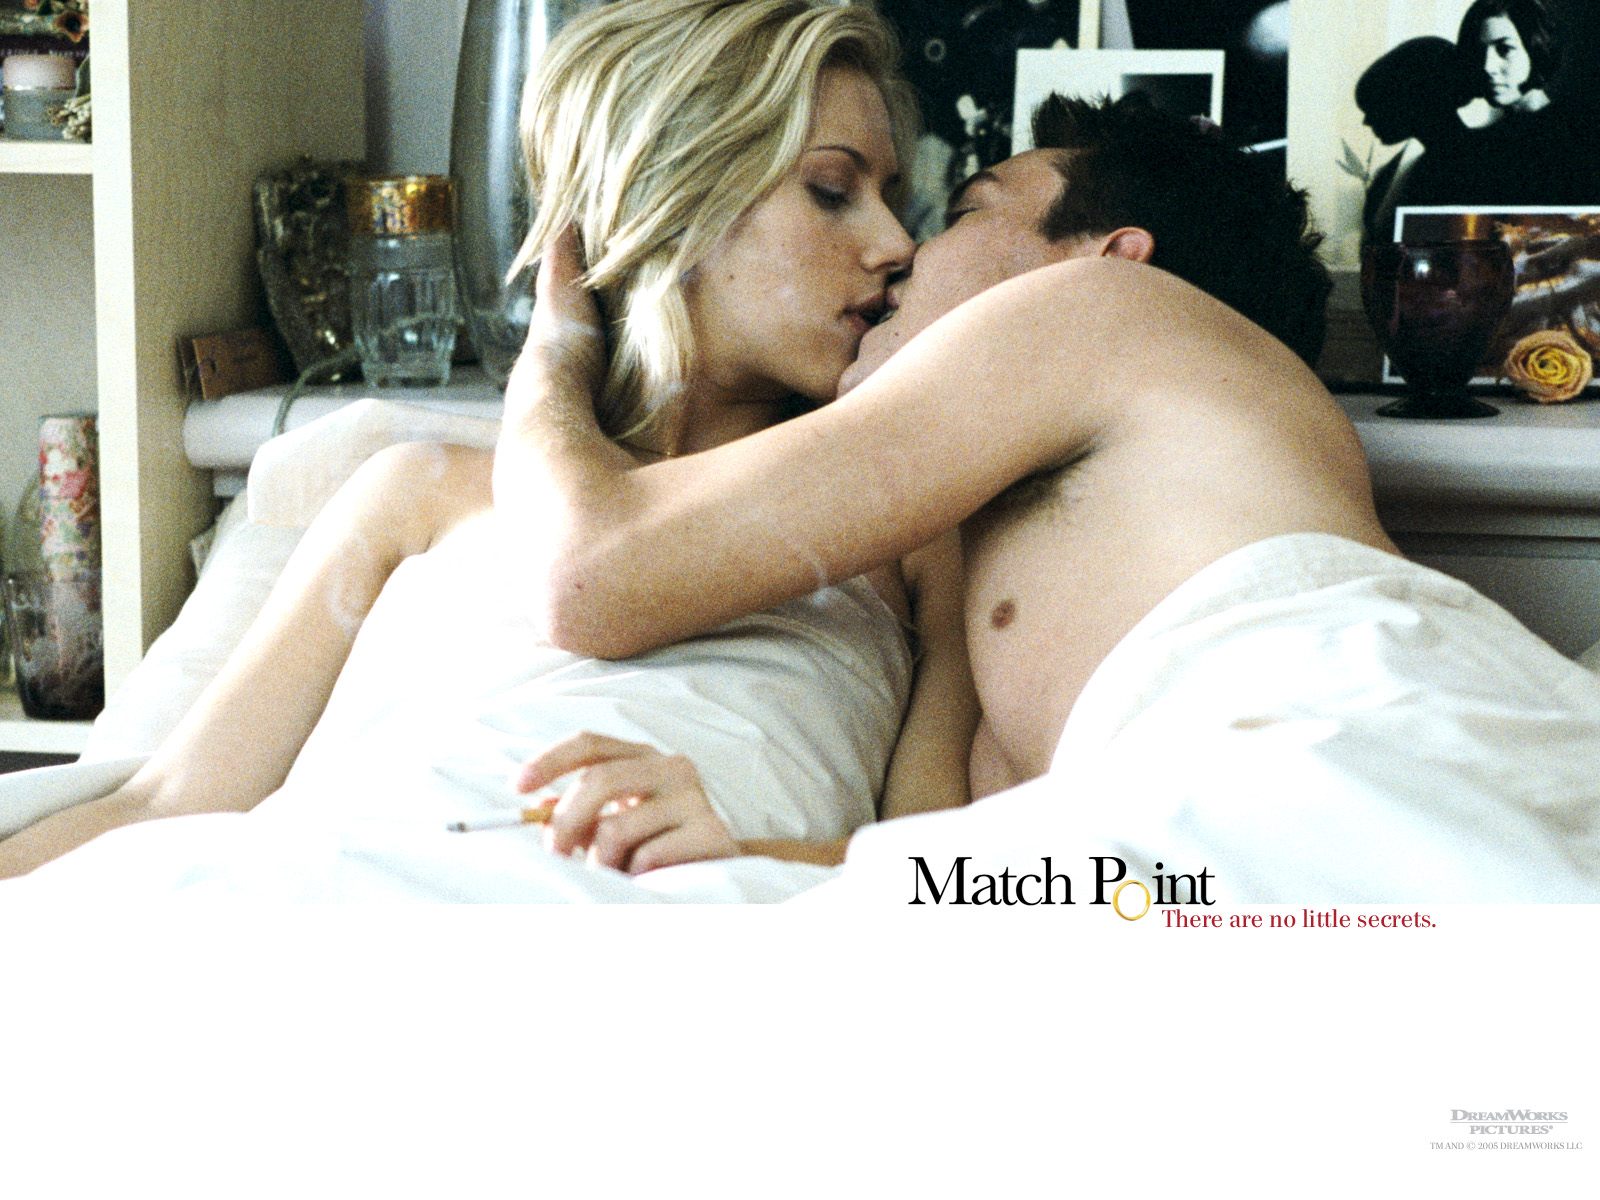 فلم سكس رومنسي http://wwwonline-nansy.blogspot.com/2011/04/match-point-2005.html